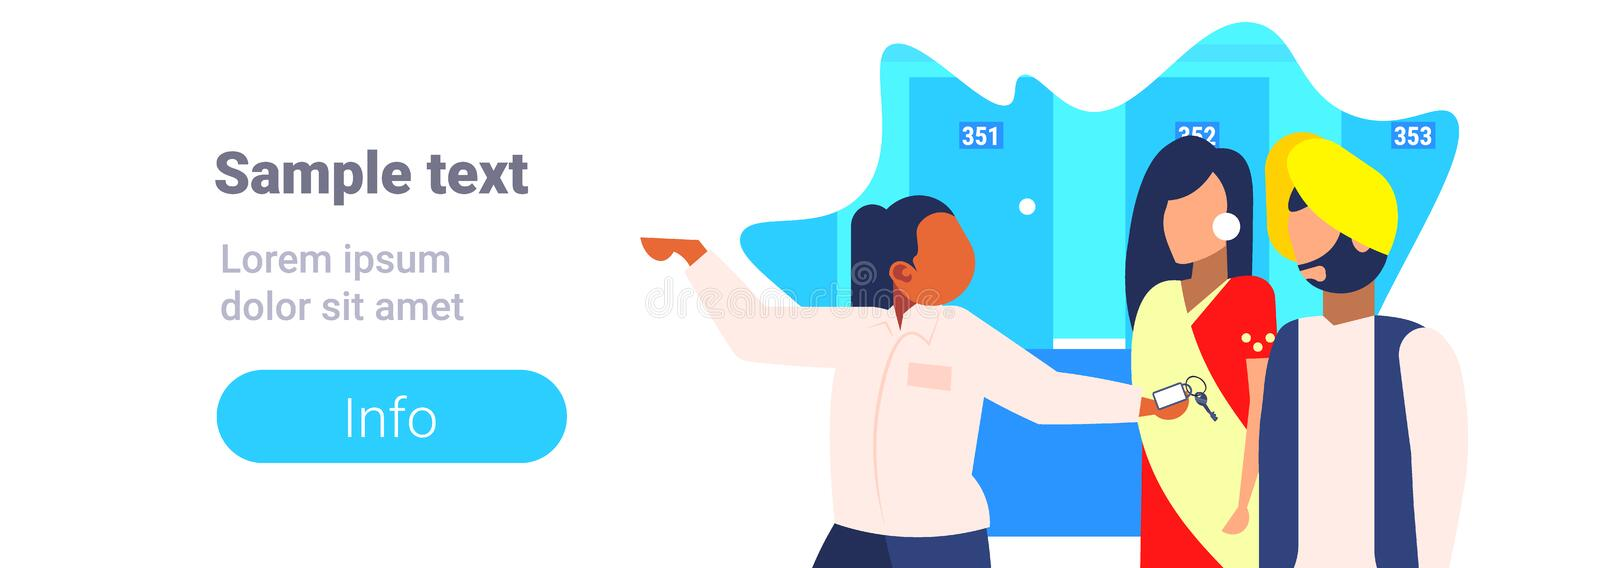 Hotel manager showing room indian guests hospitality staff concept receptionist welcoming arriving man woman tourists. Couple in traditional clothes copy space royalty free illustration